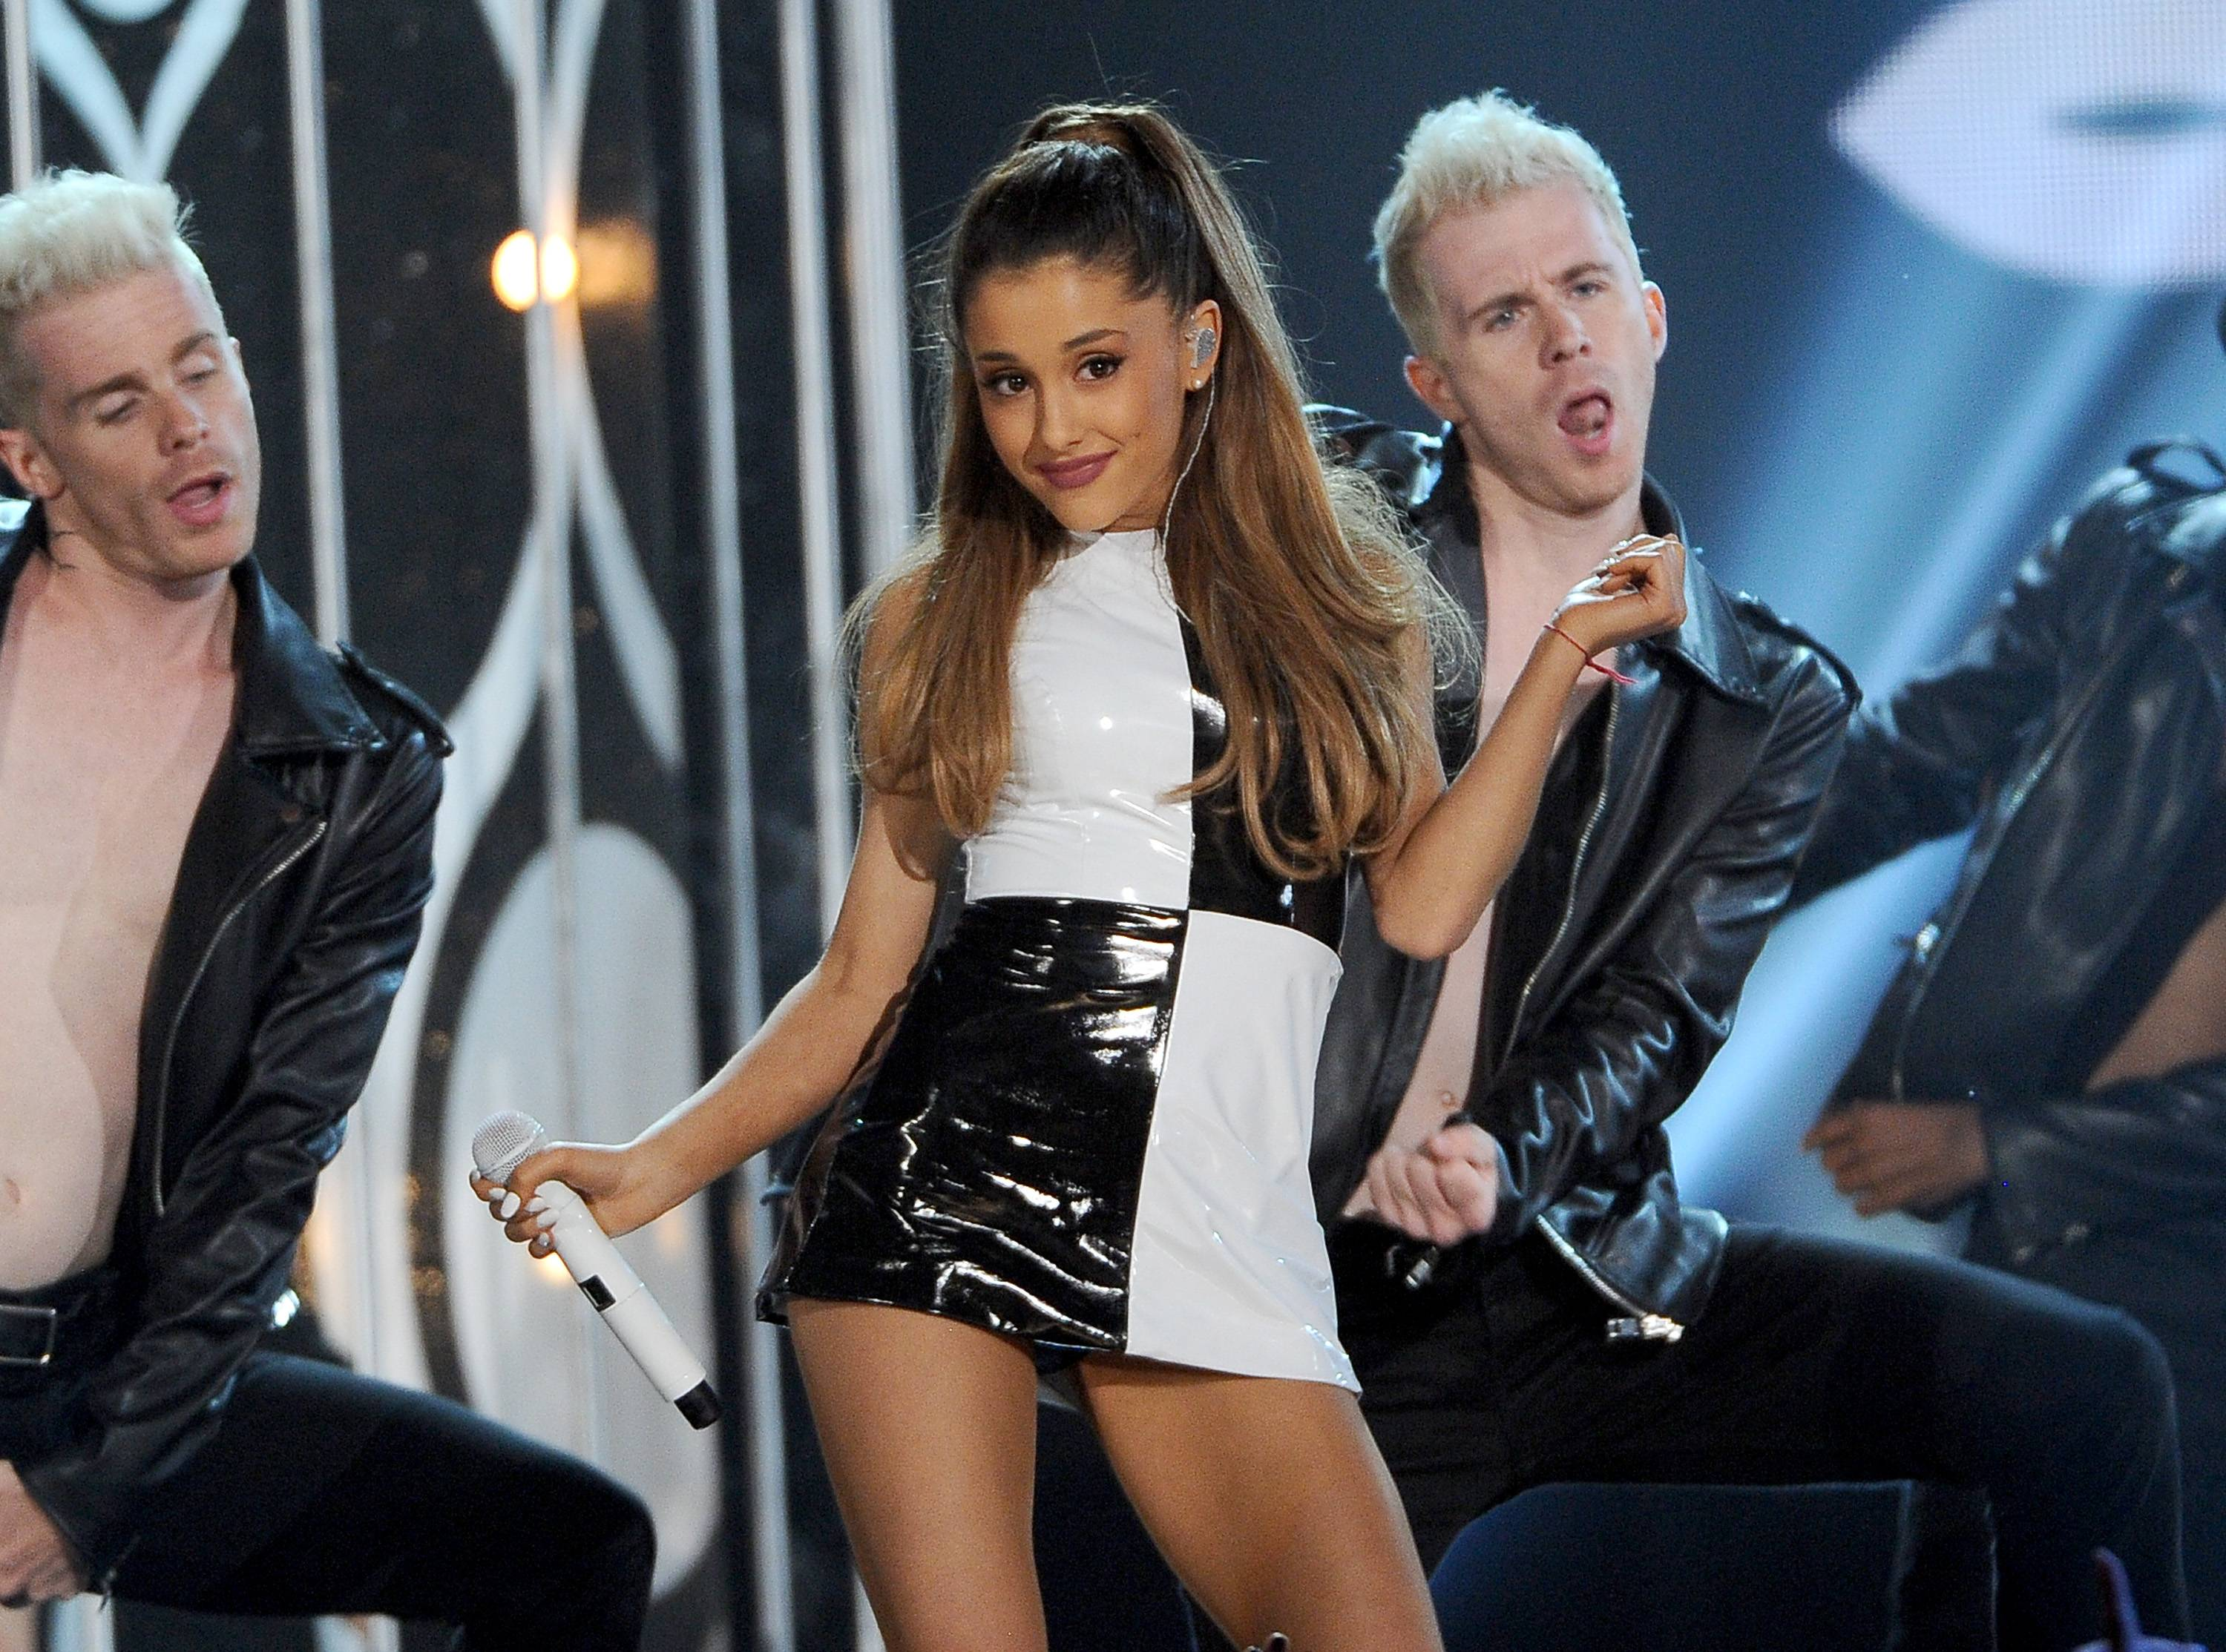 Ariana Grande performs at the Billboard Music Awards at the MGM Grand Garden Arena on Sunday, May 18, 2014, in Las Vegas.